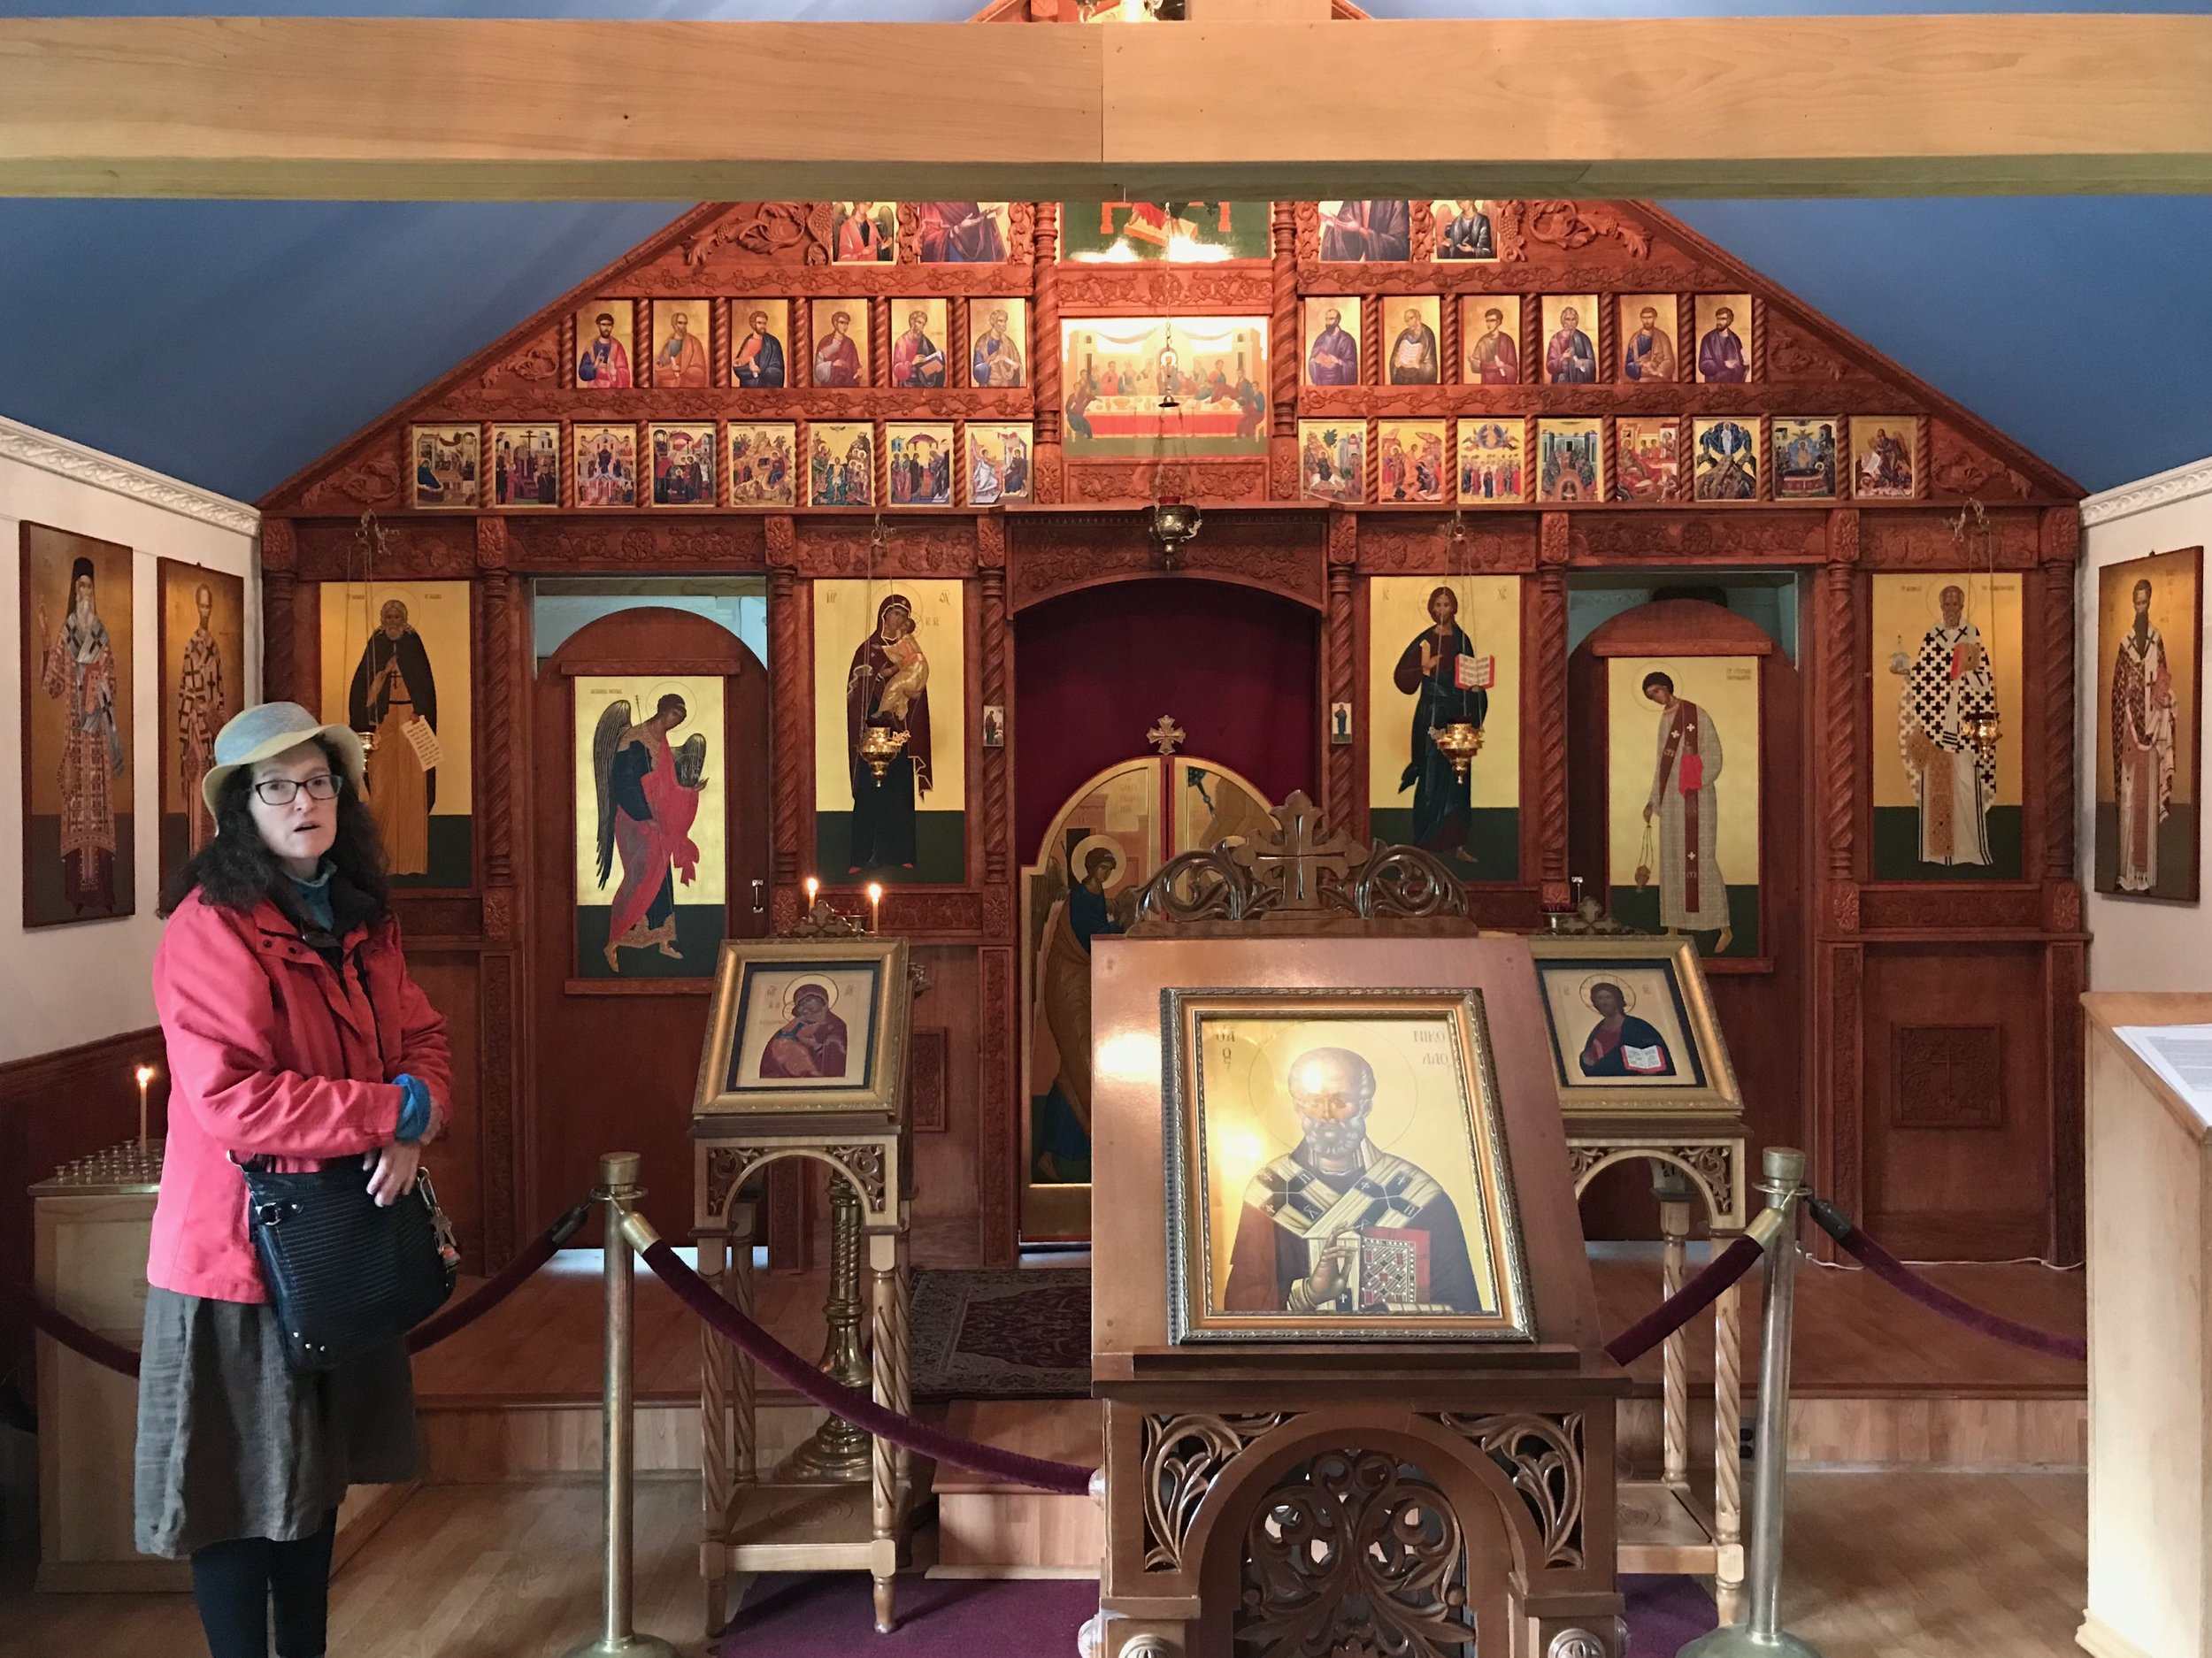 A guide describes the icons inside the Russian Orthodox Church in Elutna, Alaska.